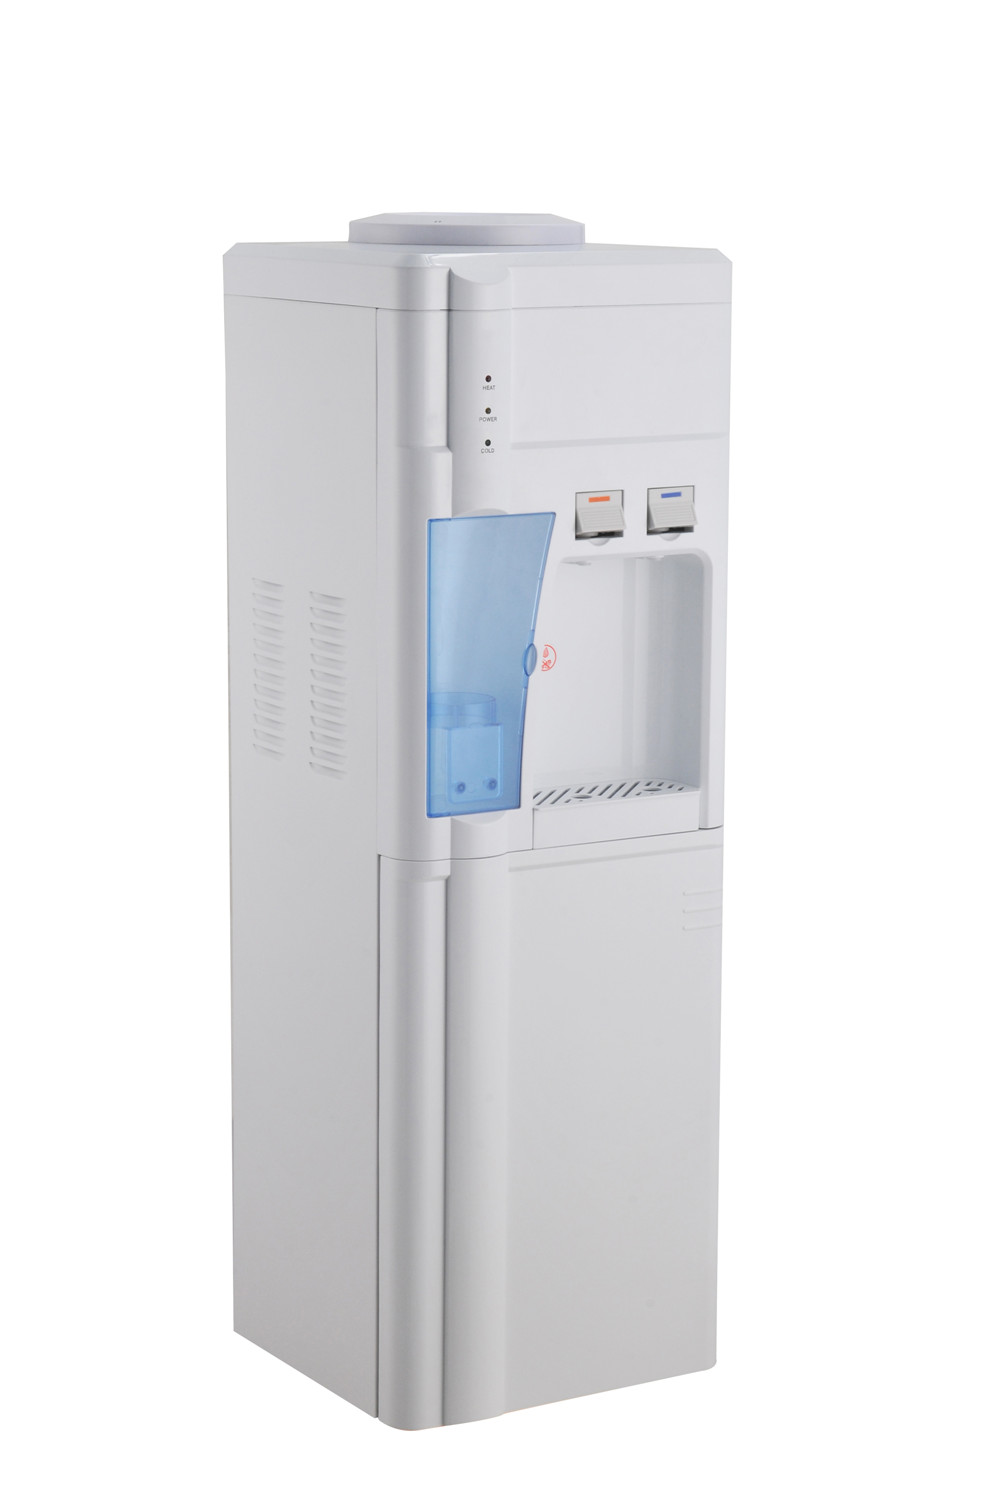 Public Instant Cooling Water Dispenser